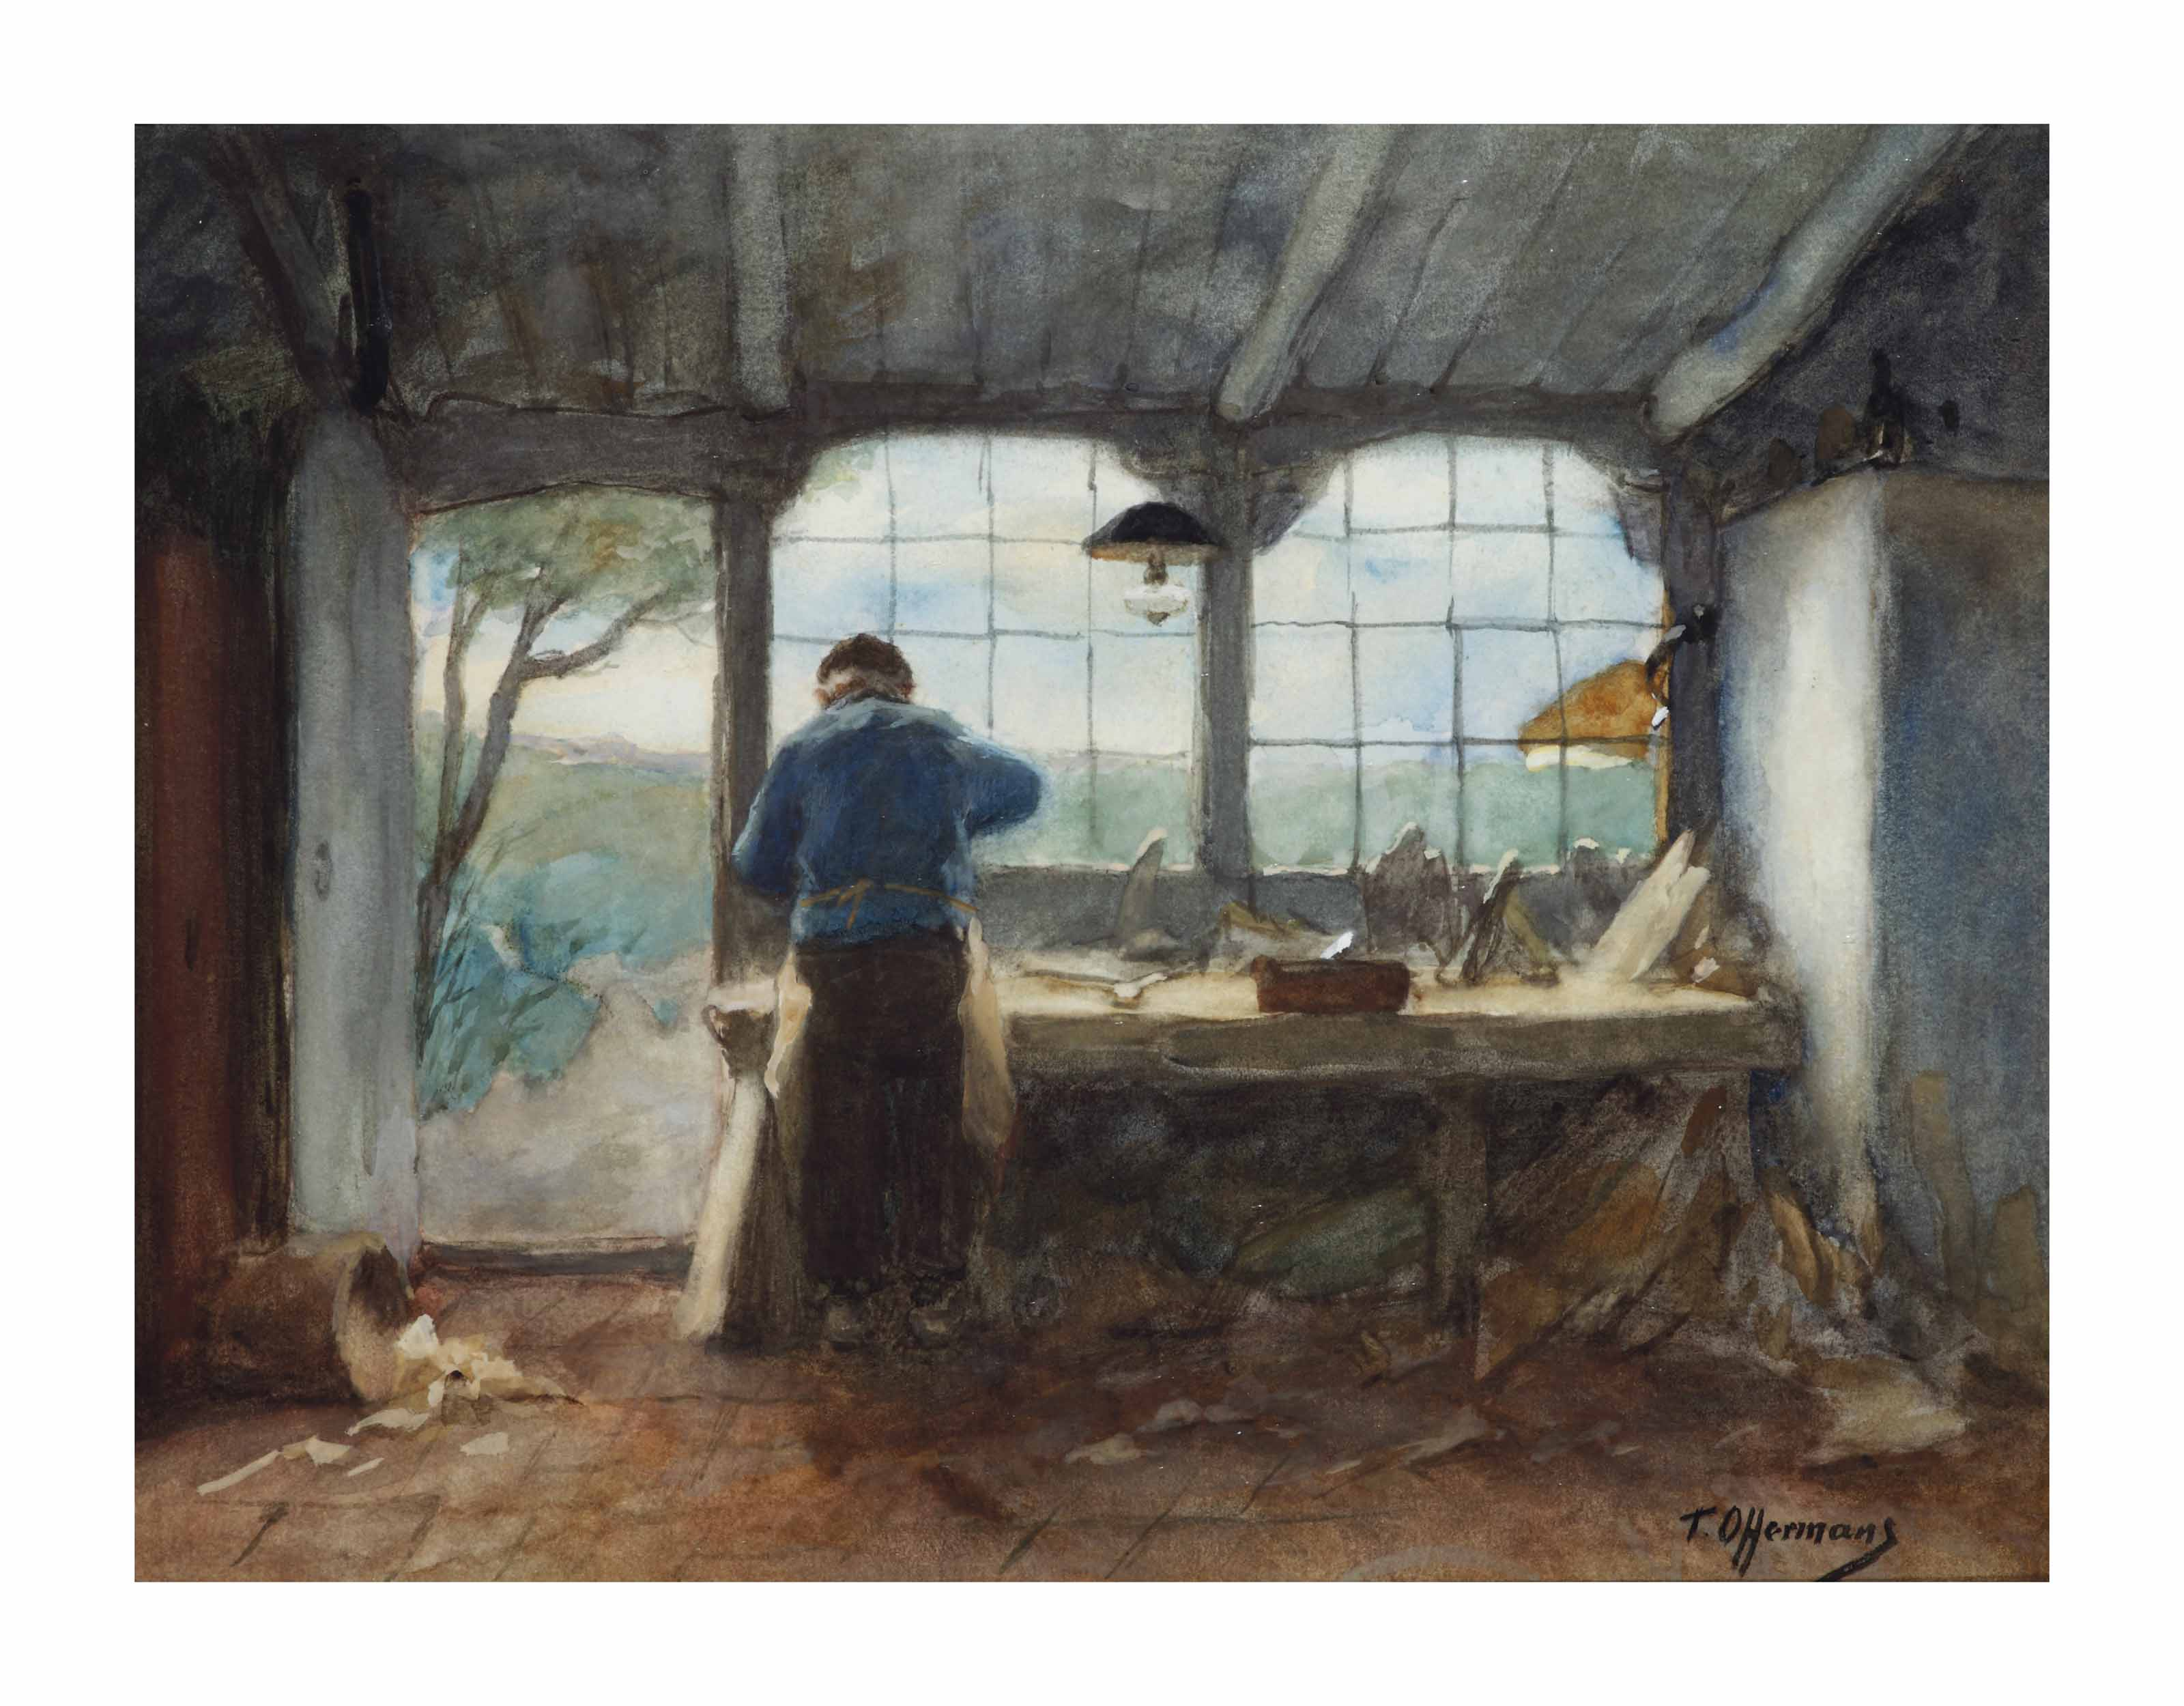 The carpenter's workshop